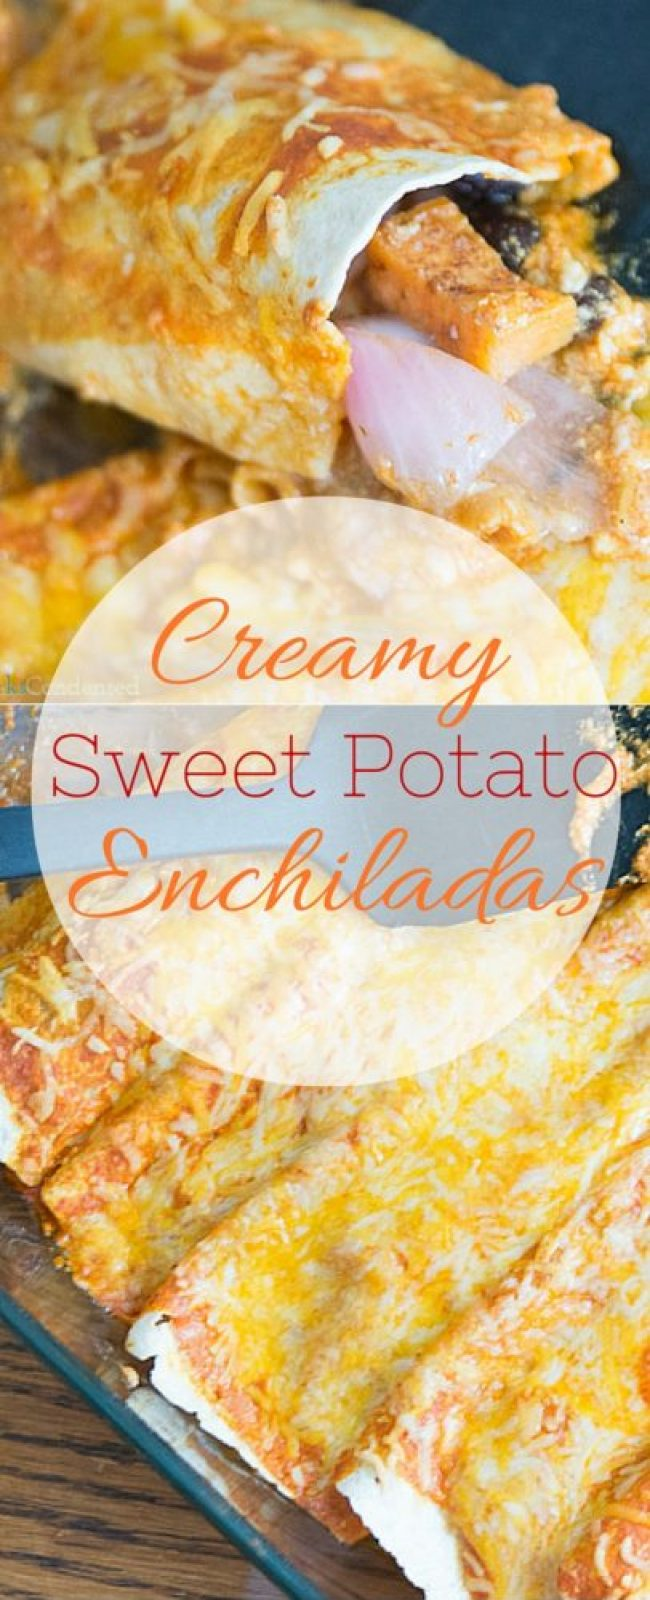 These creamy sweet potato enchiladas are the perfect meatless meal that the entire family will devour!